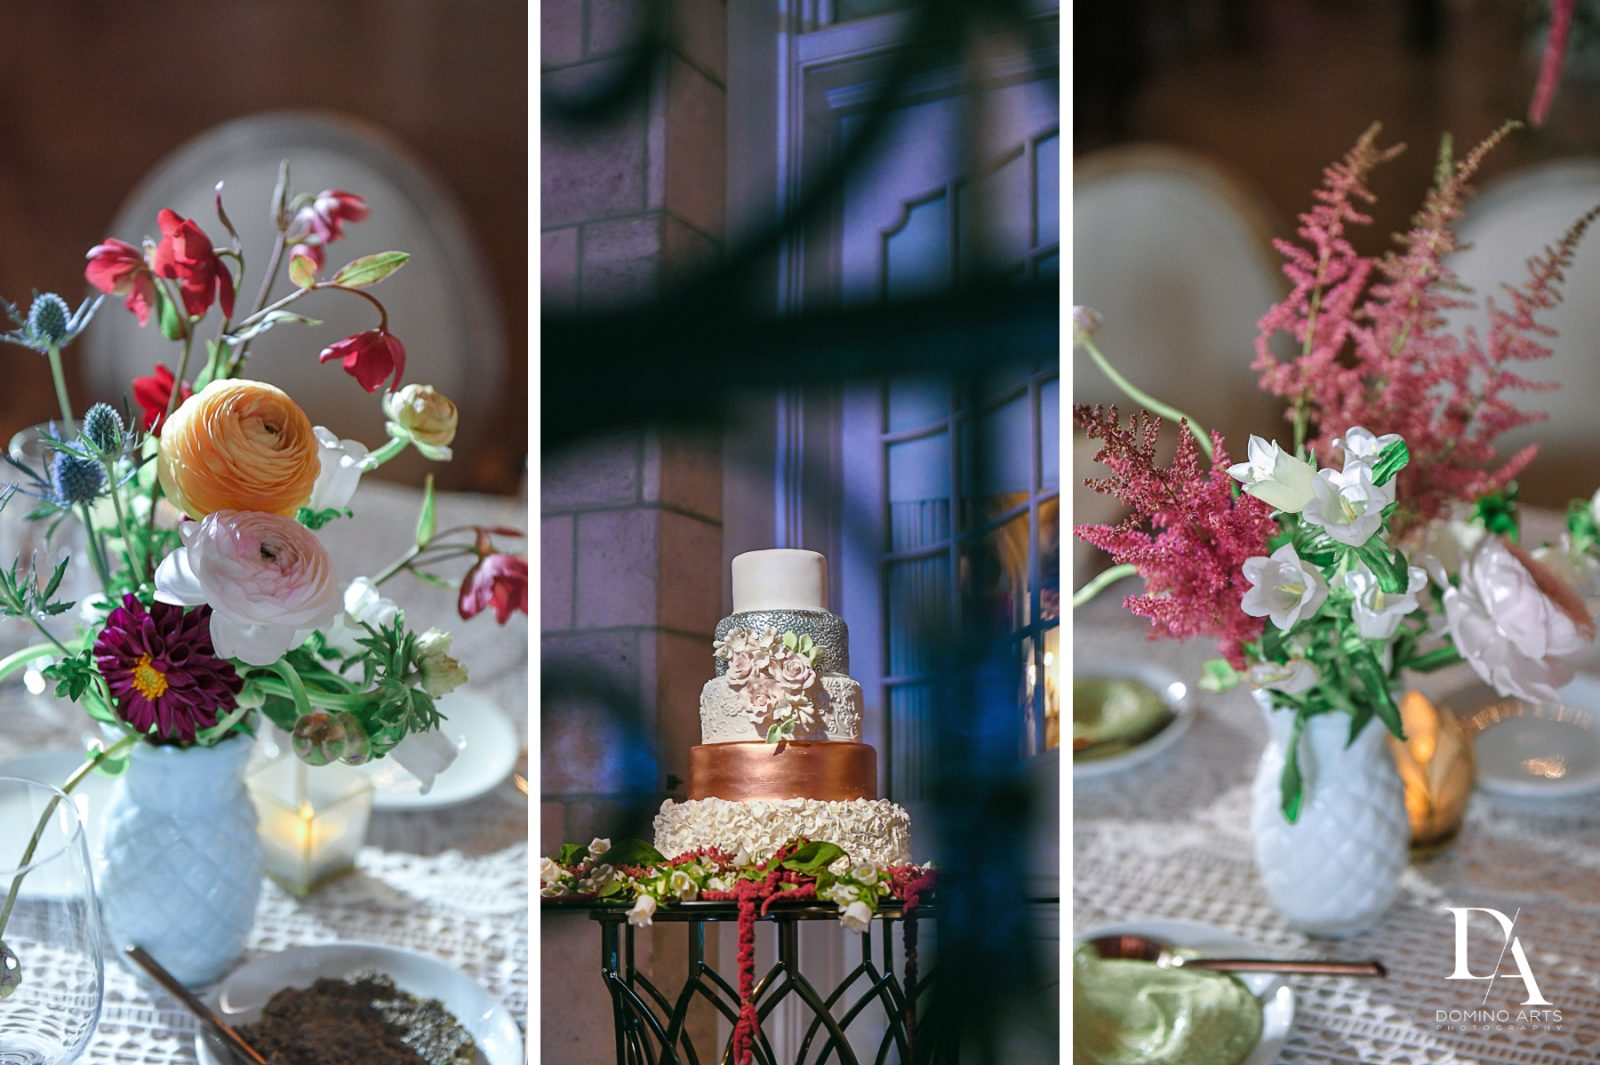 pastel flowers at Vintage Garden Wedding at Flagler Museum Palm Beach by Domino Arts Photography